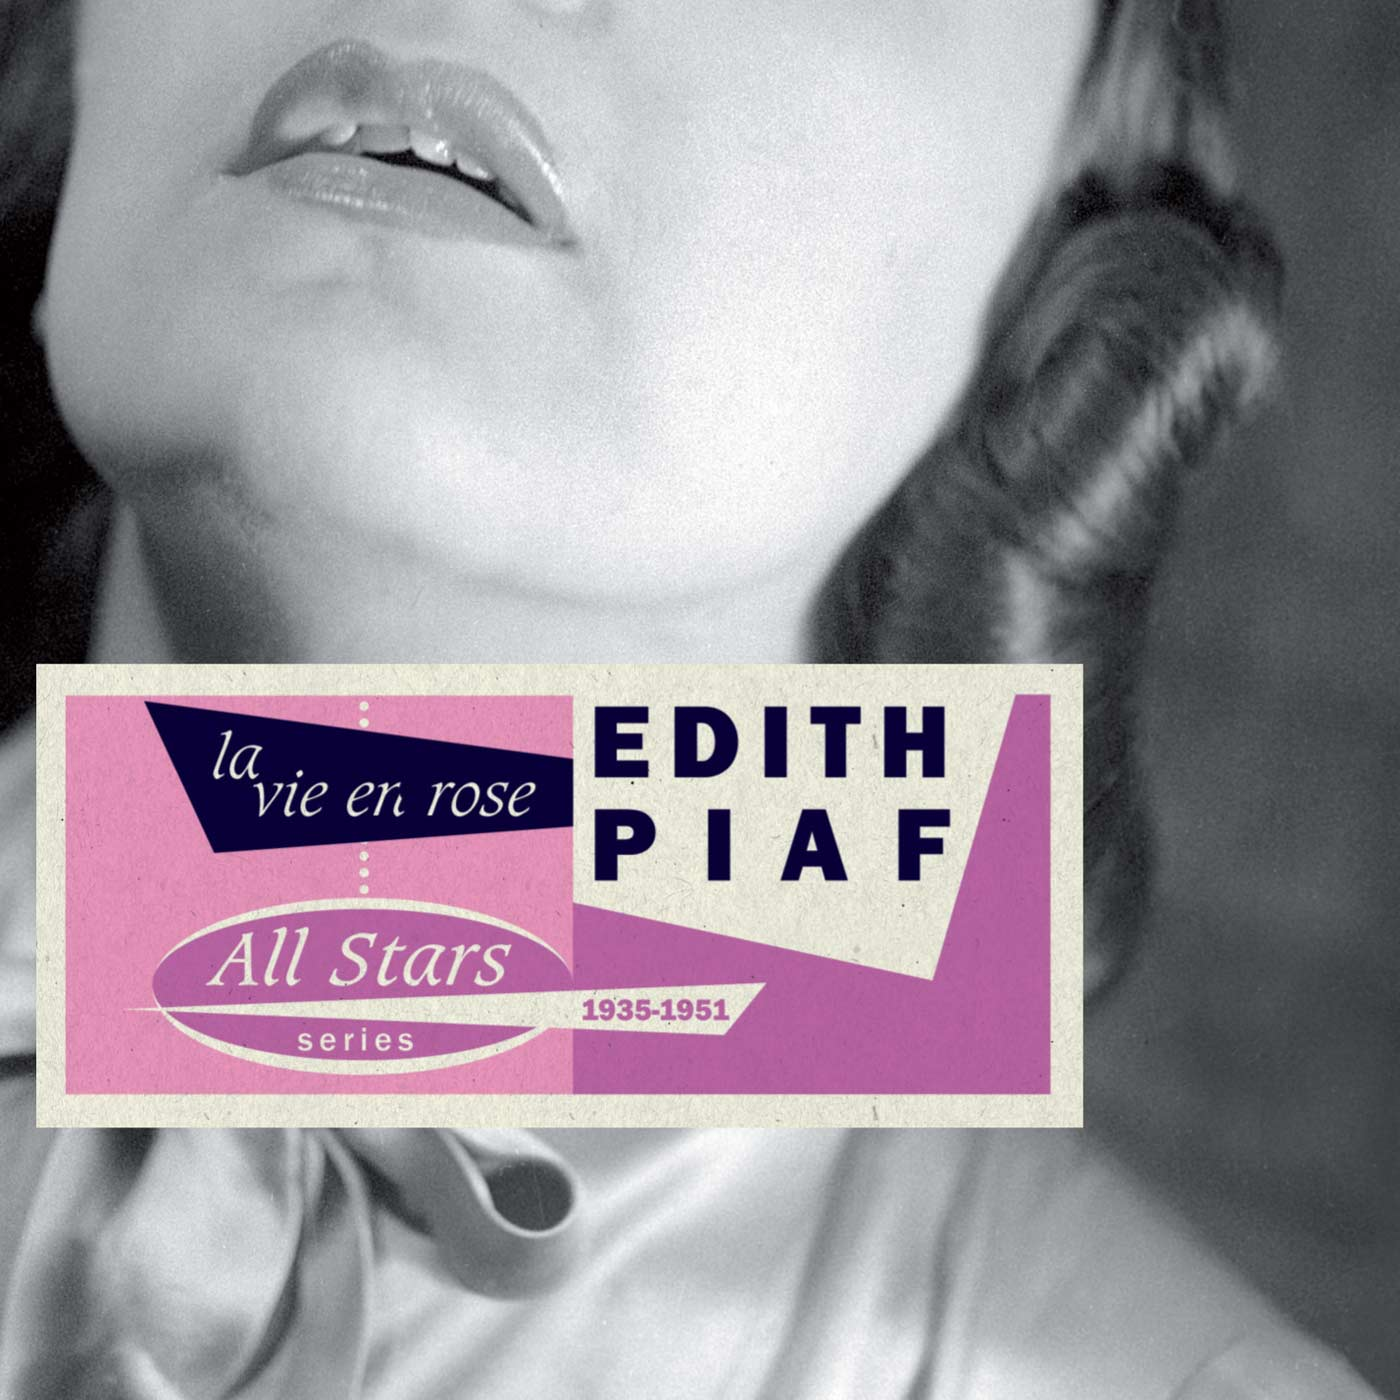 La Vie En Rose 1935-1951 by Edith Piaf cover